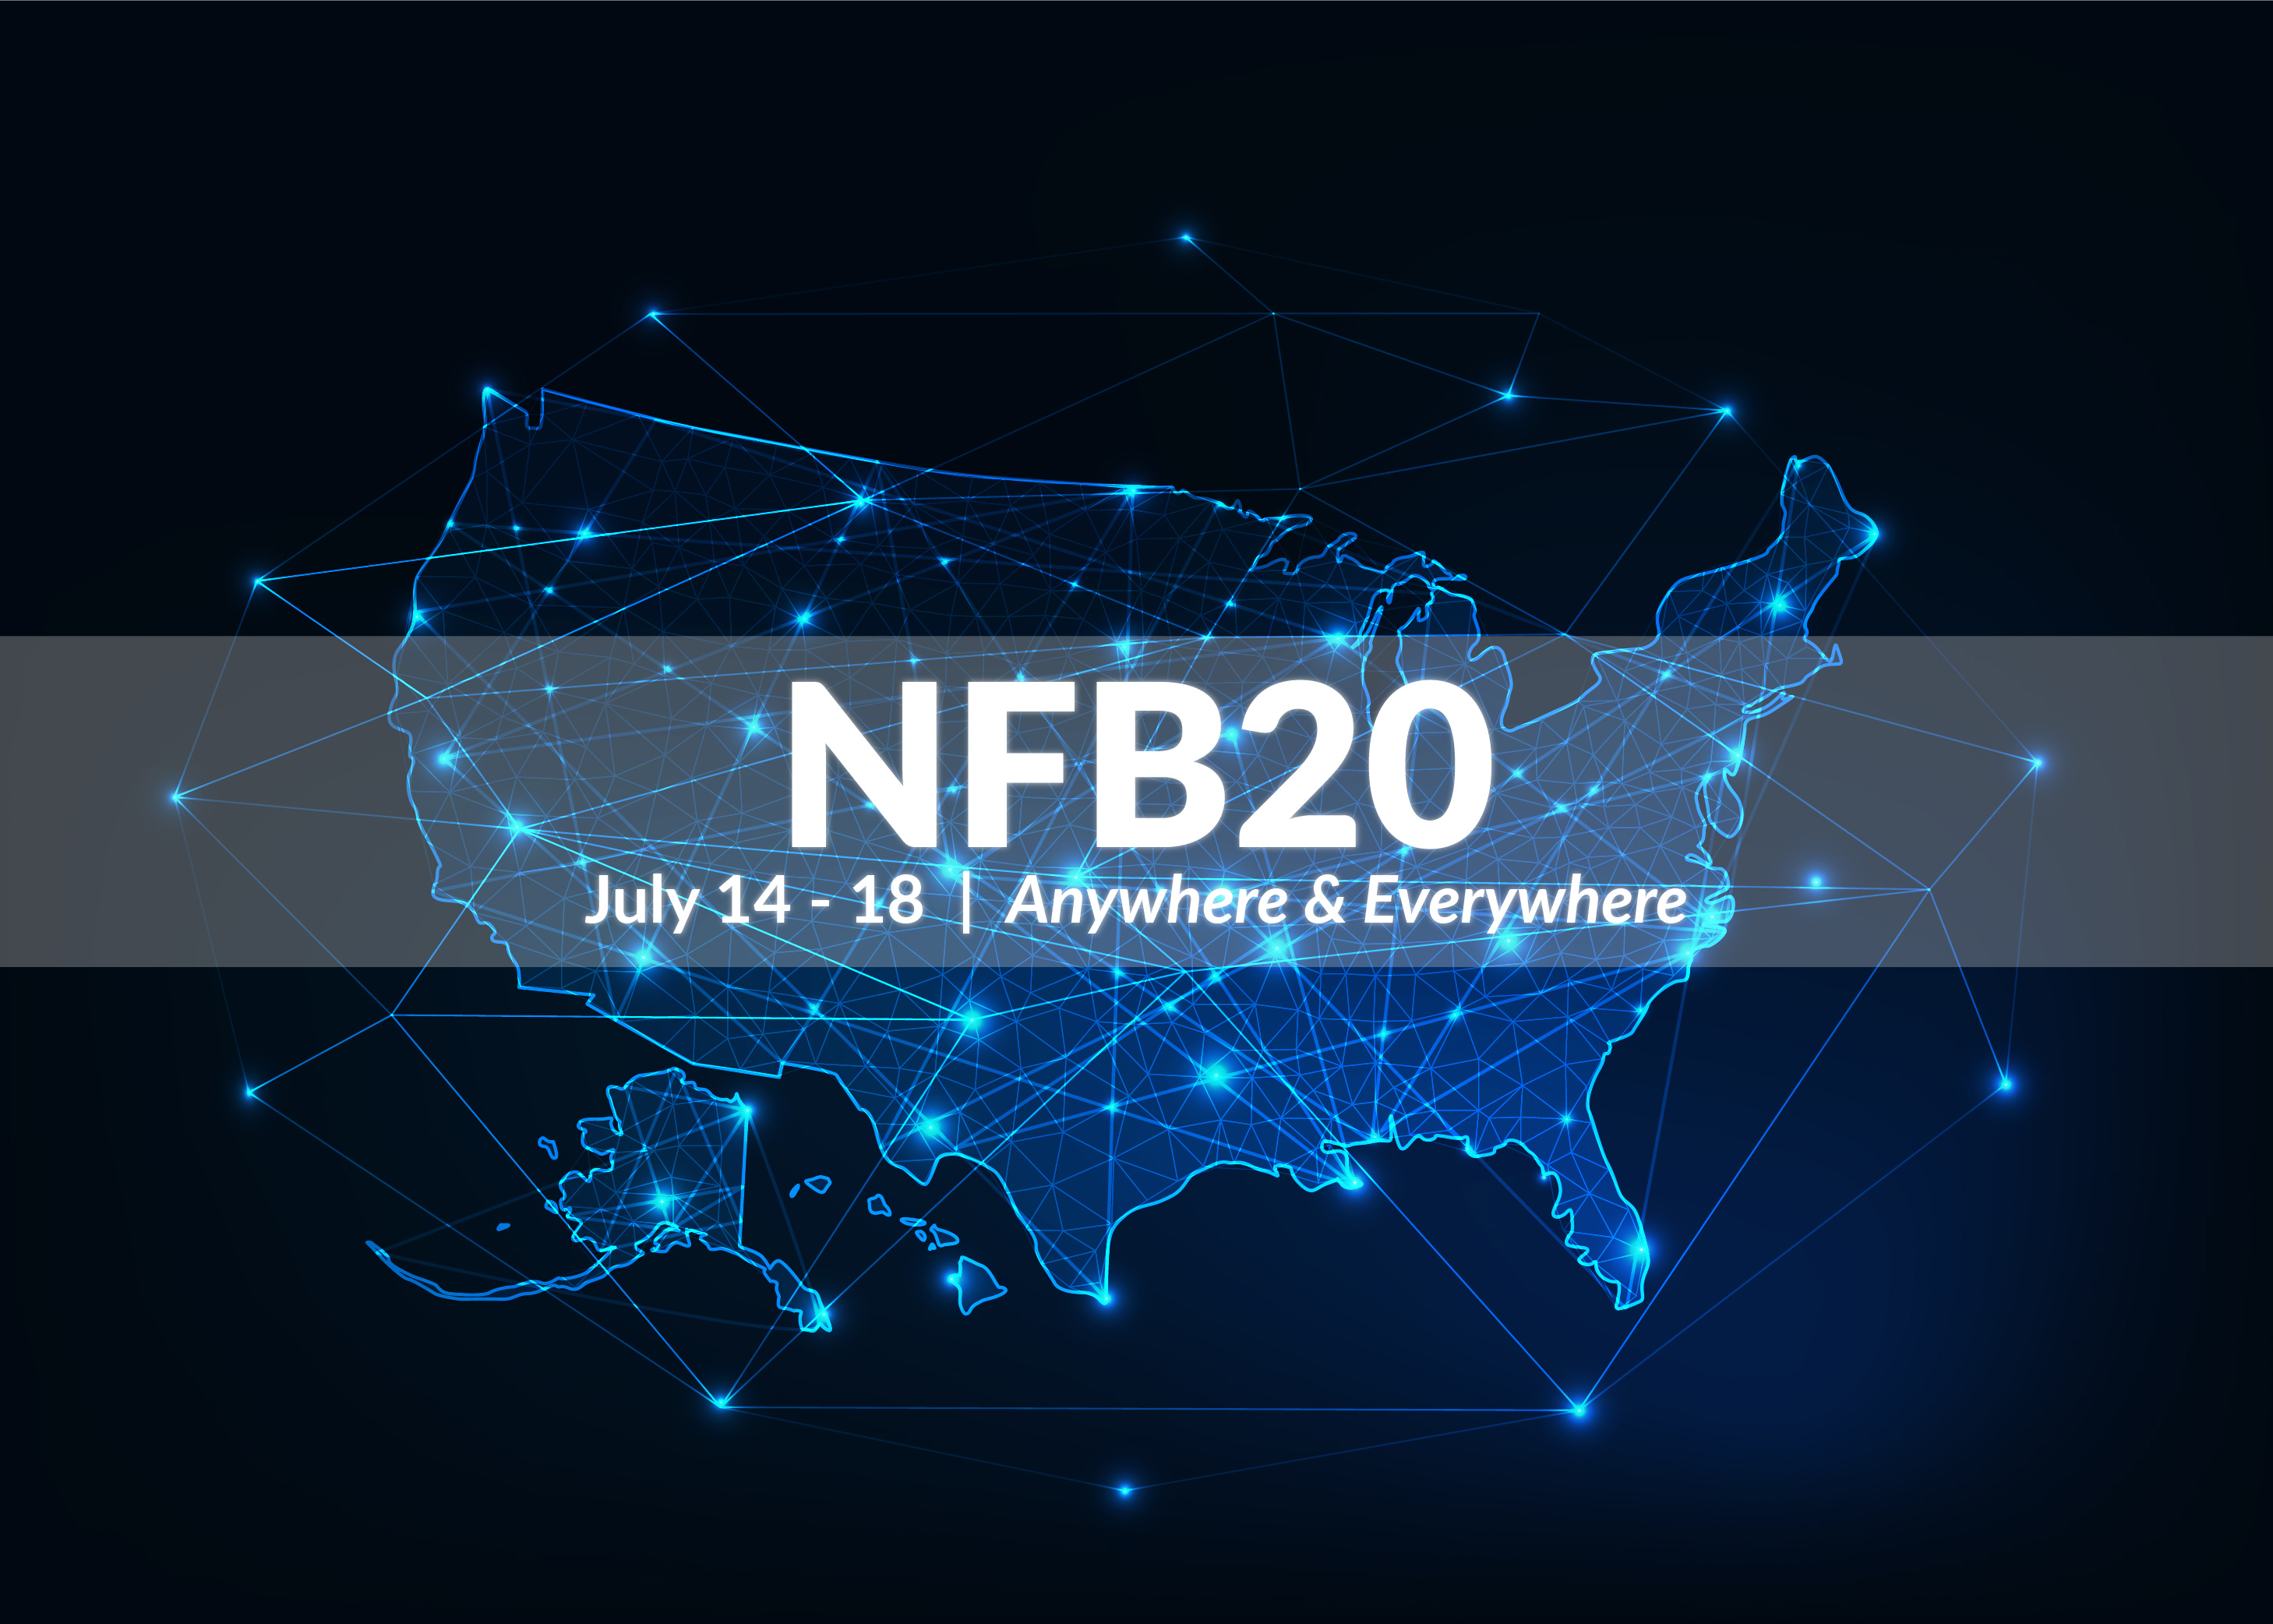 NFB 2020 National Convention logo